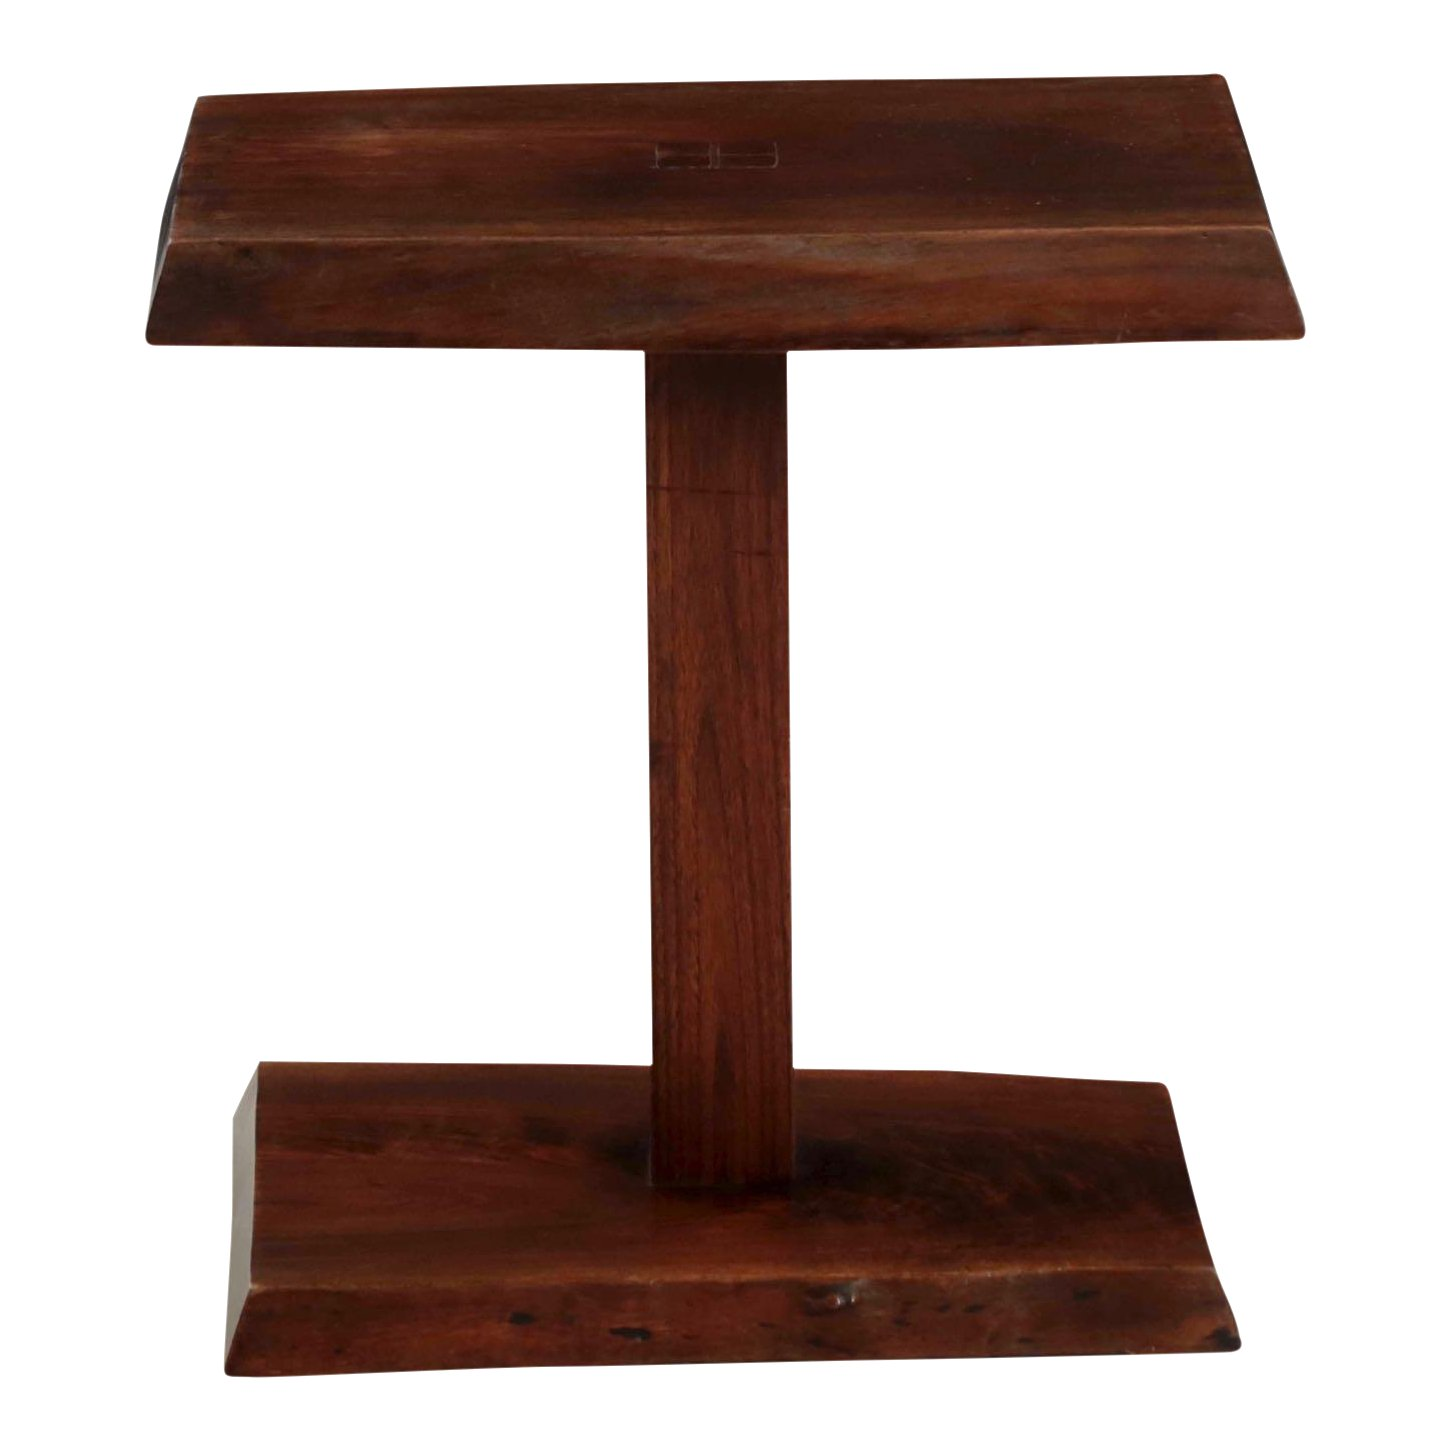 new hope school live edge walnut side table alan rockwell circa accent brown chairish kitchen lamp shades mid century wood legs bench chairs for living room threshold marble top